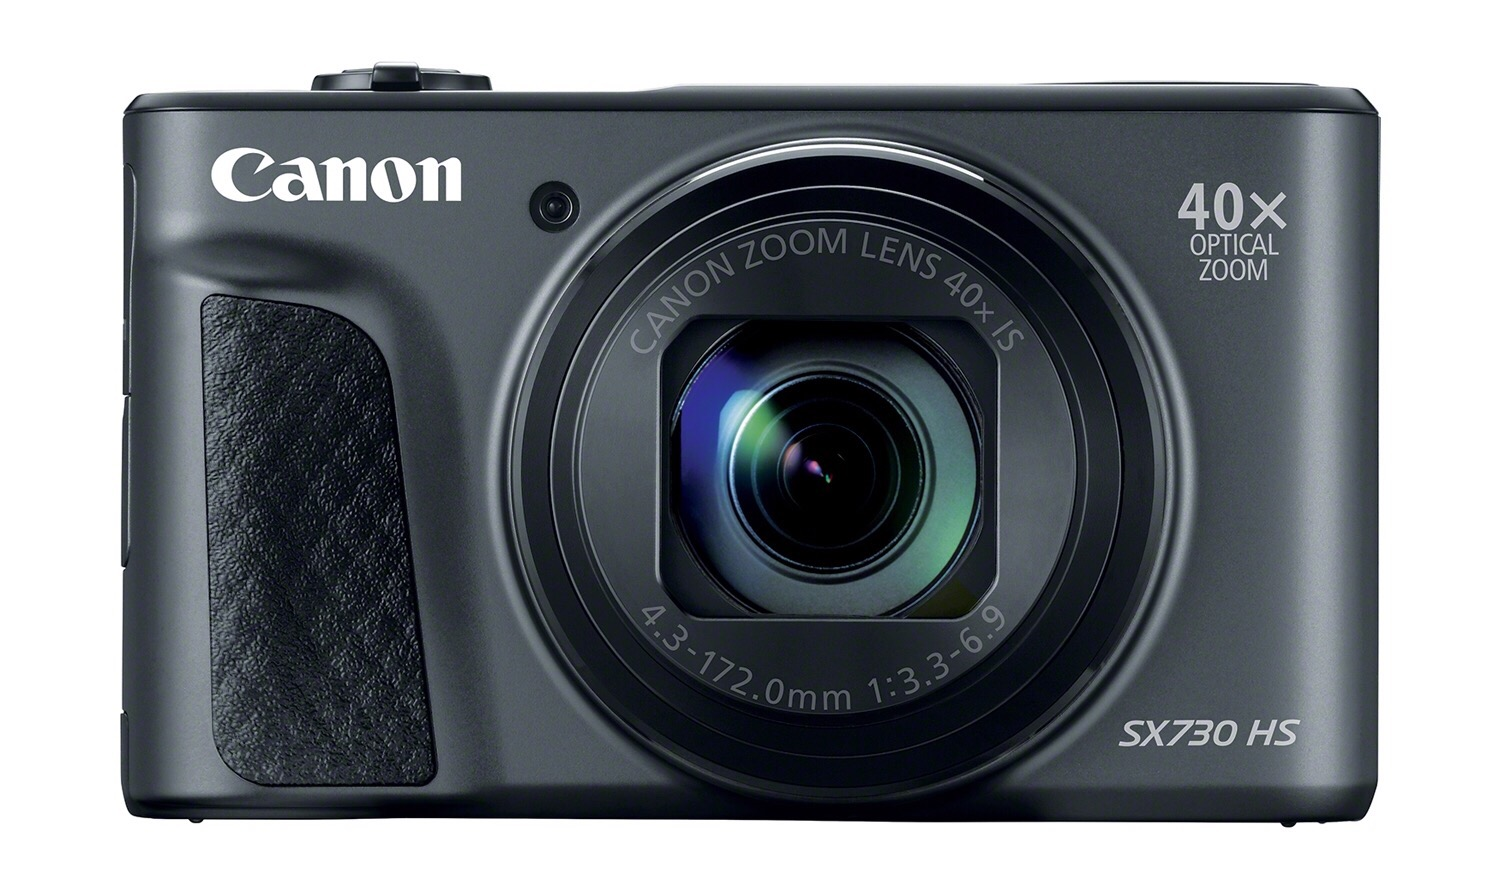 canon powershot sx730 hs officially announced canonwatch. Black Bedroom Furniture Sets. Home Design Ideas